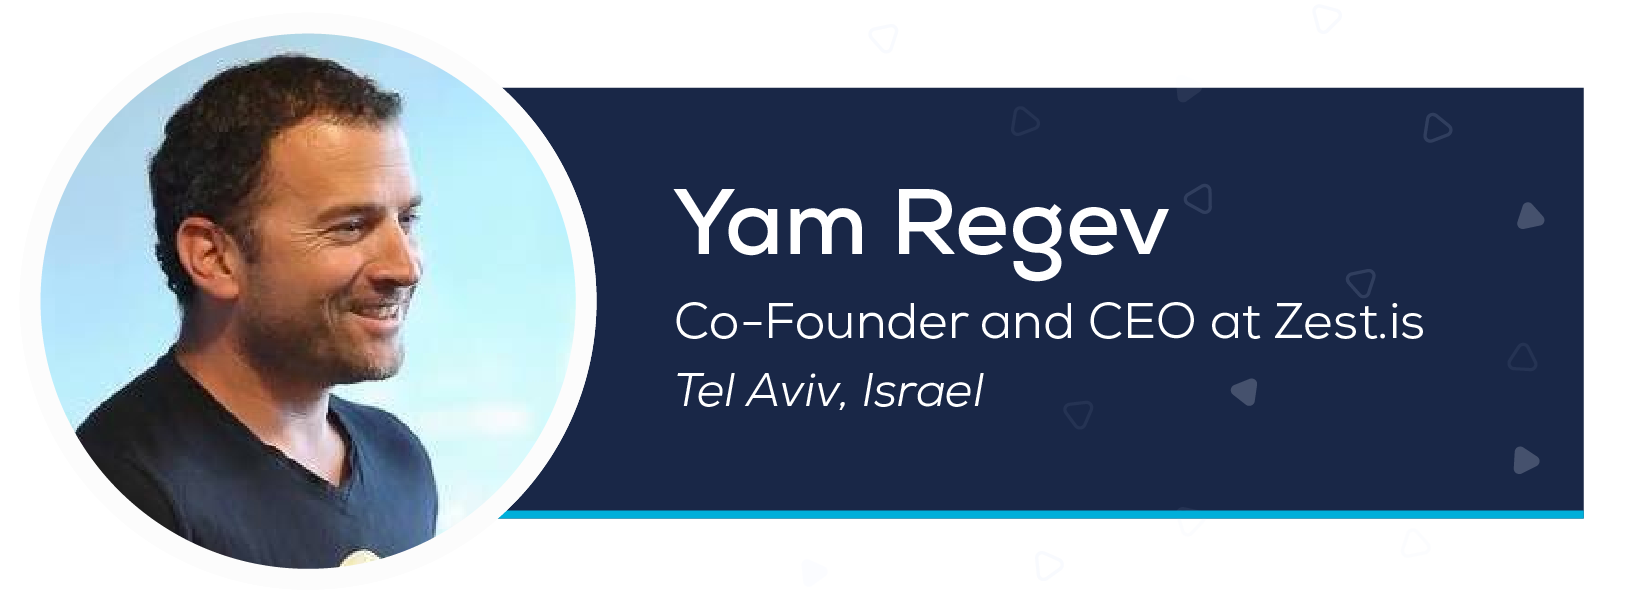 Yam Regev interview with Freshworks